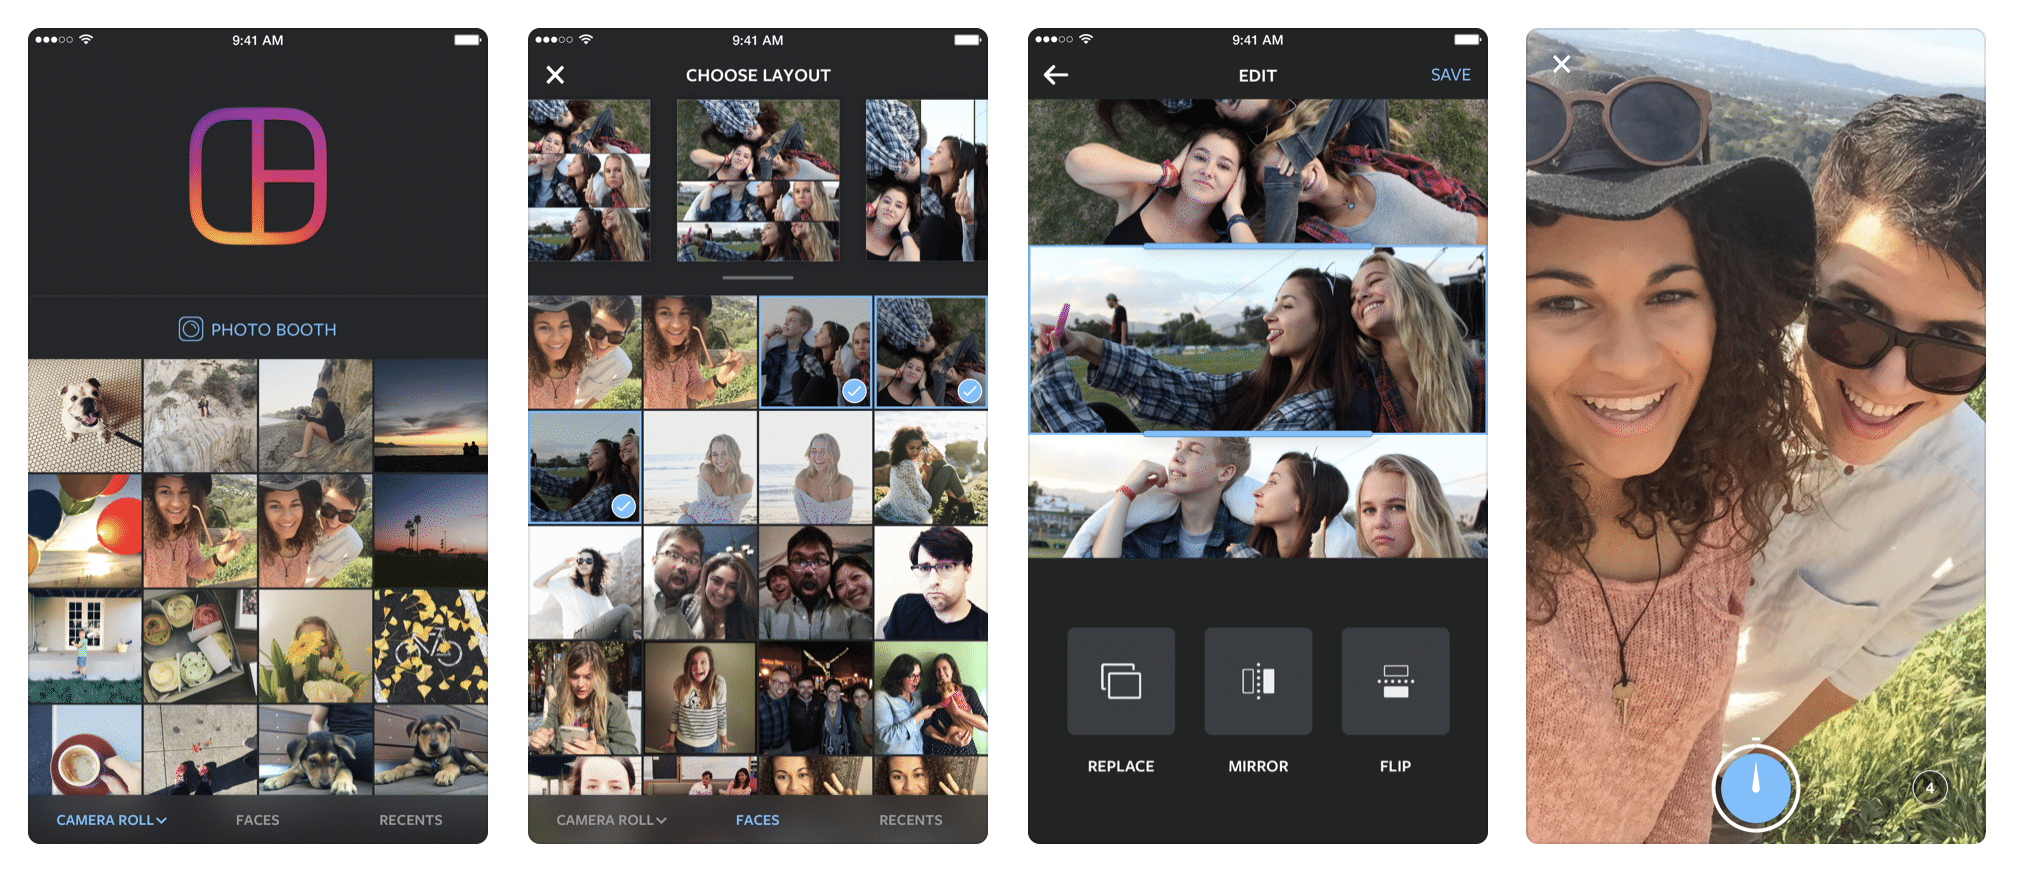 Use Layout App to Add Several Images to Your Stories on Instagram